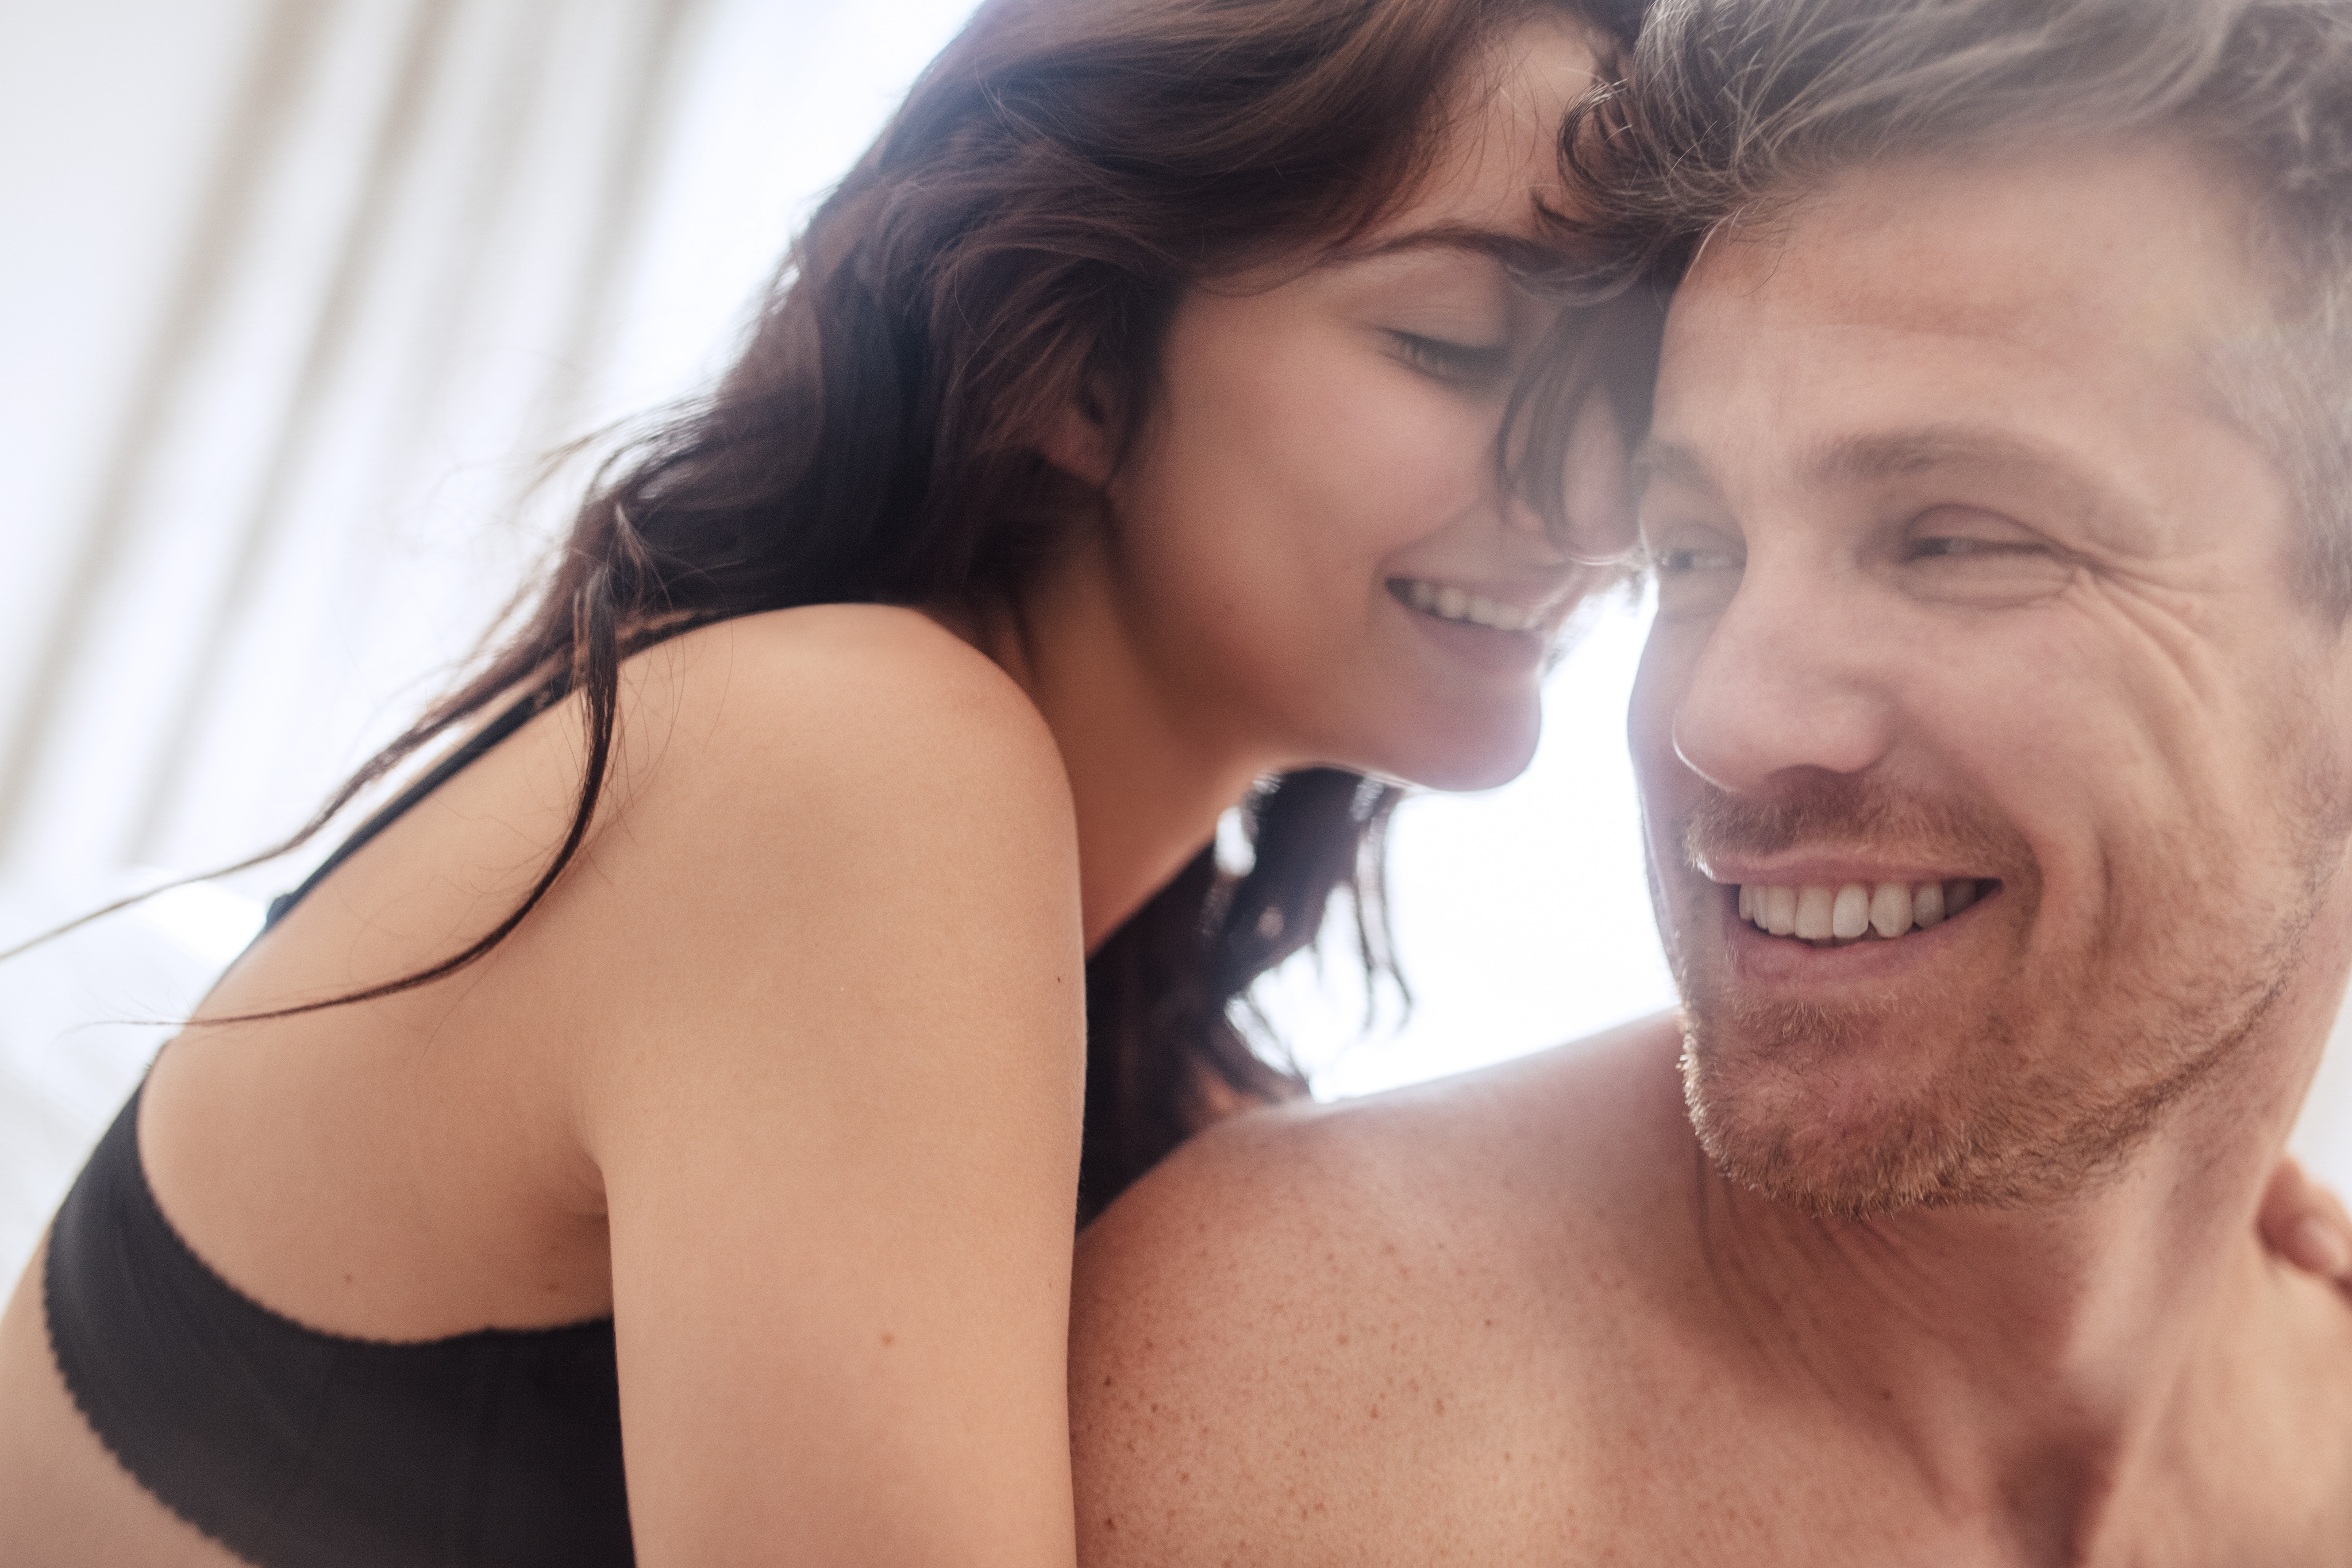 gay couples are often more active in the bedroom than their straight counterparts